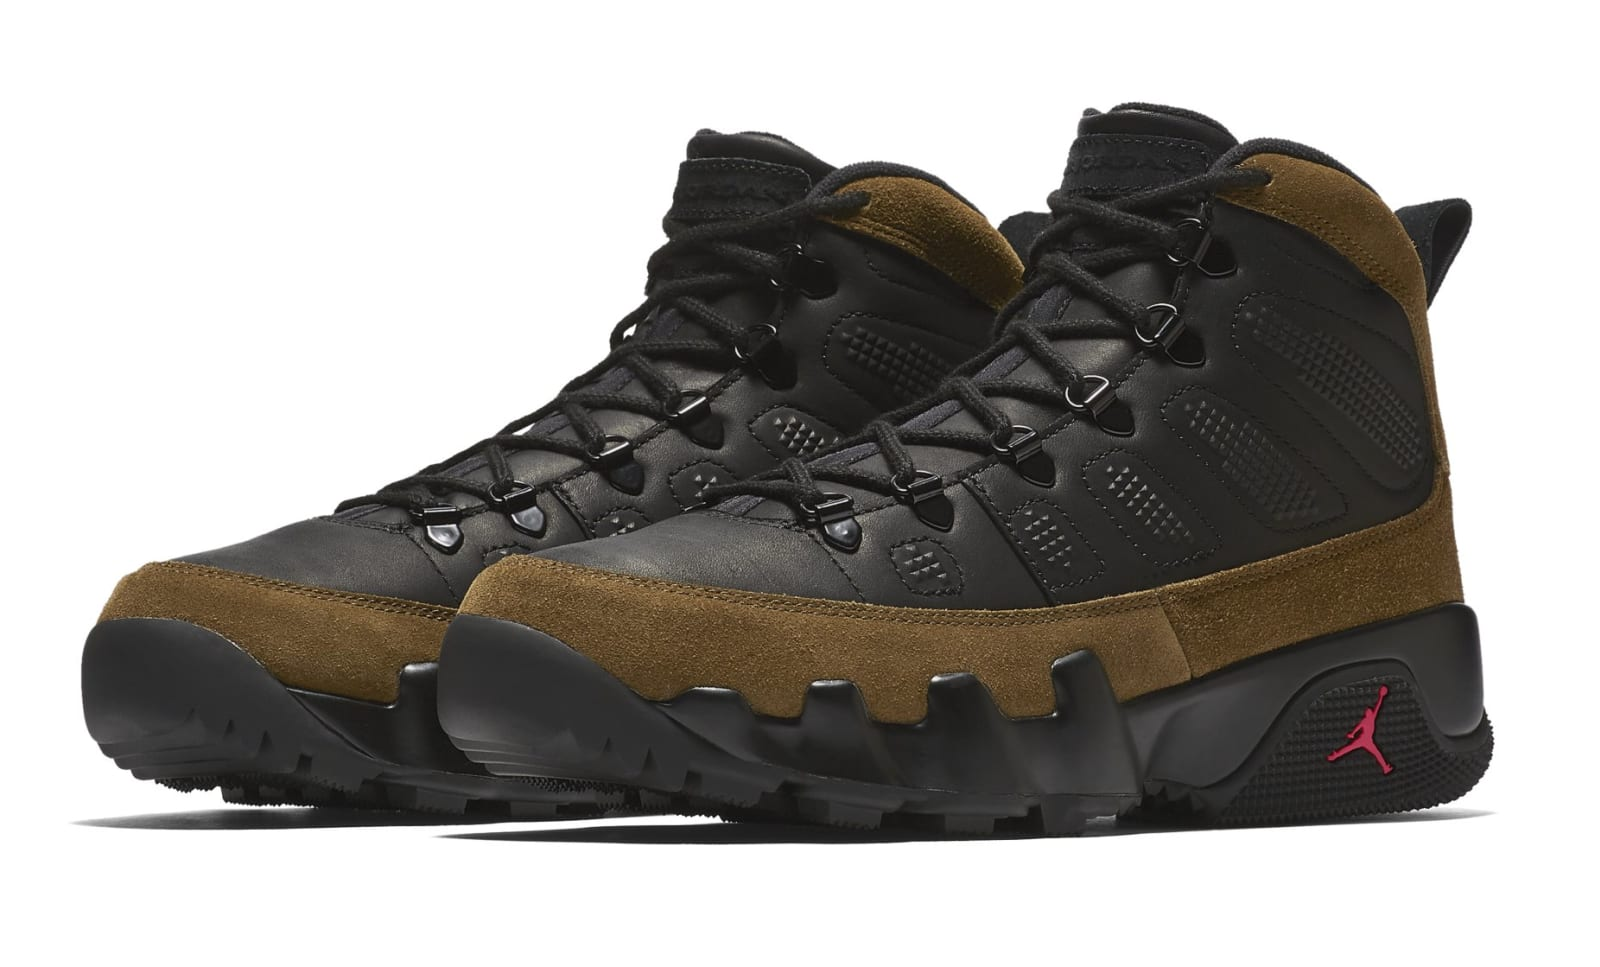 dfe20b620a Release Roundup: The Sneakers You Need to Check Out This Weekend ...